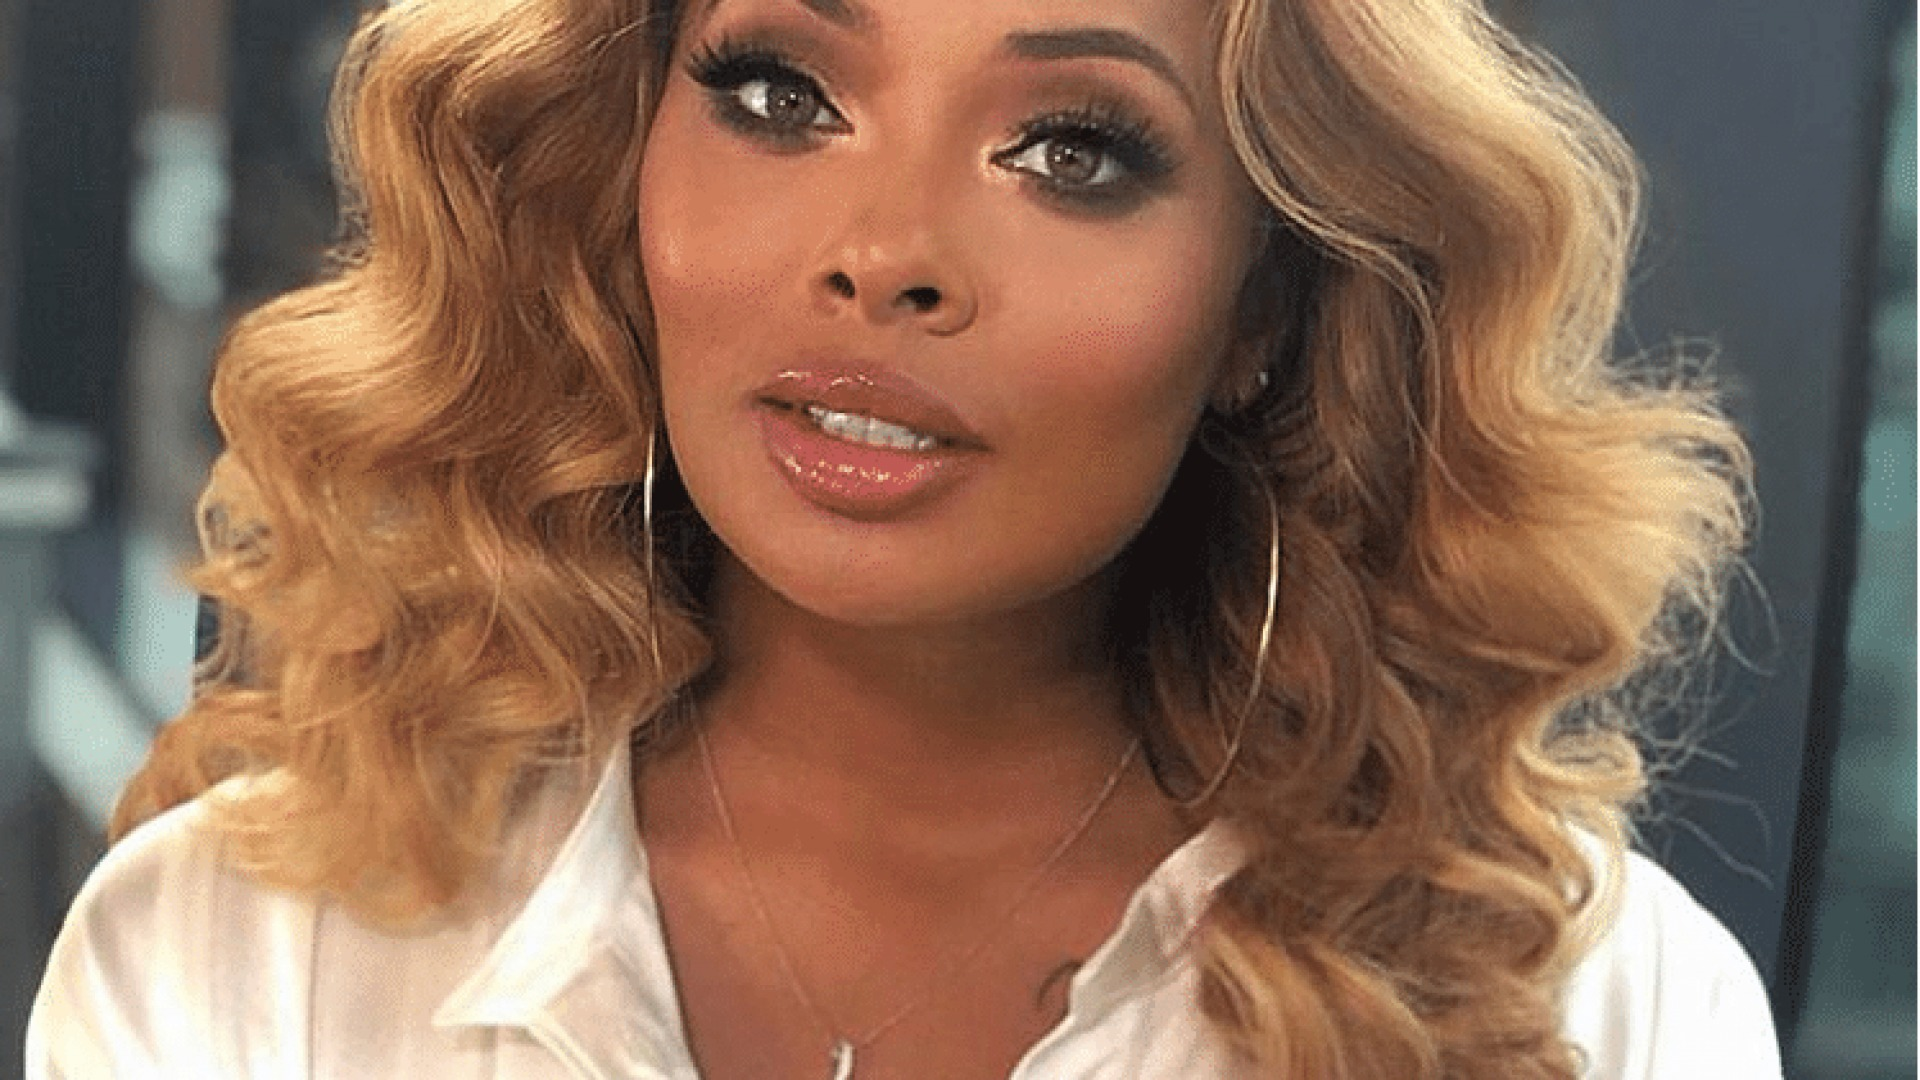 Eva Marcille's Recent Photo Has Fans Drooling - See It Here